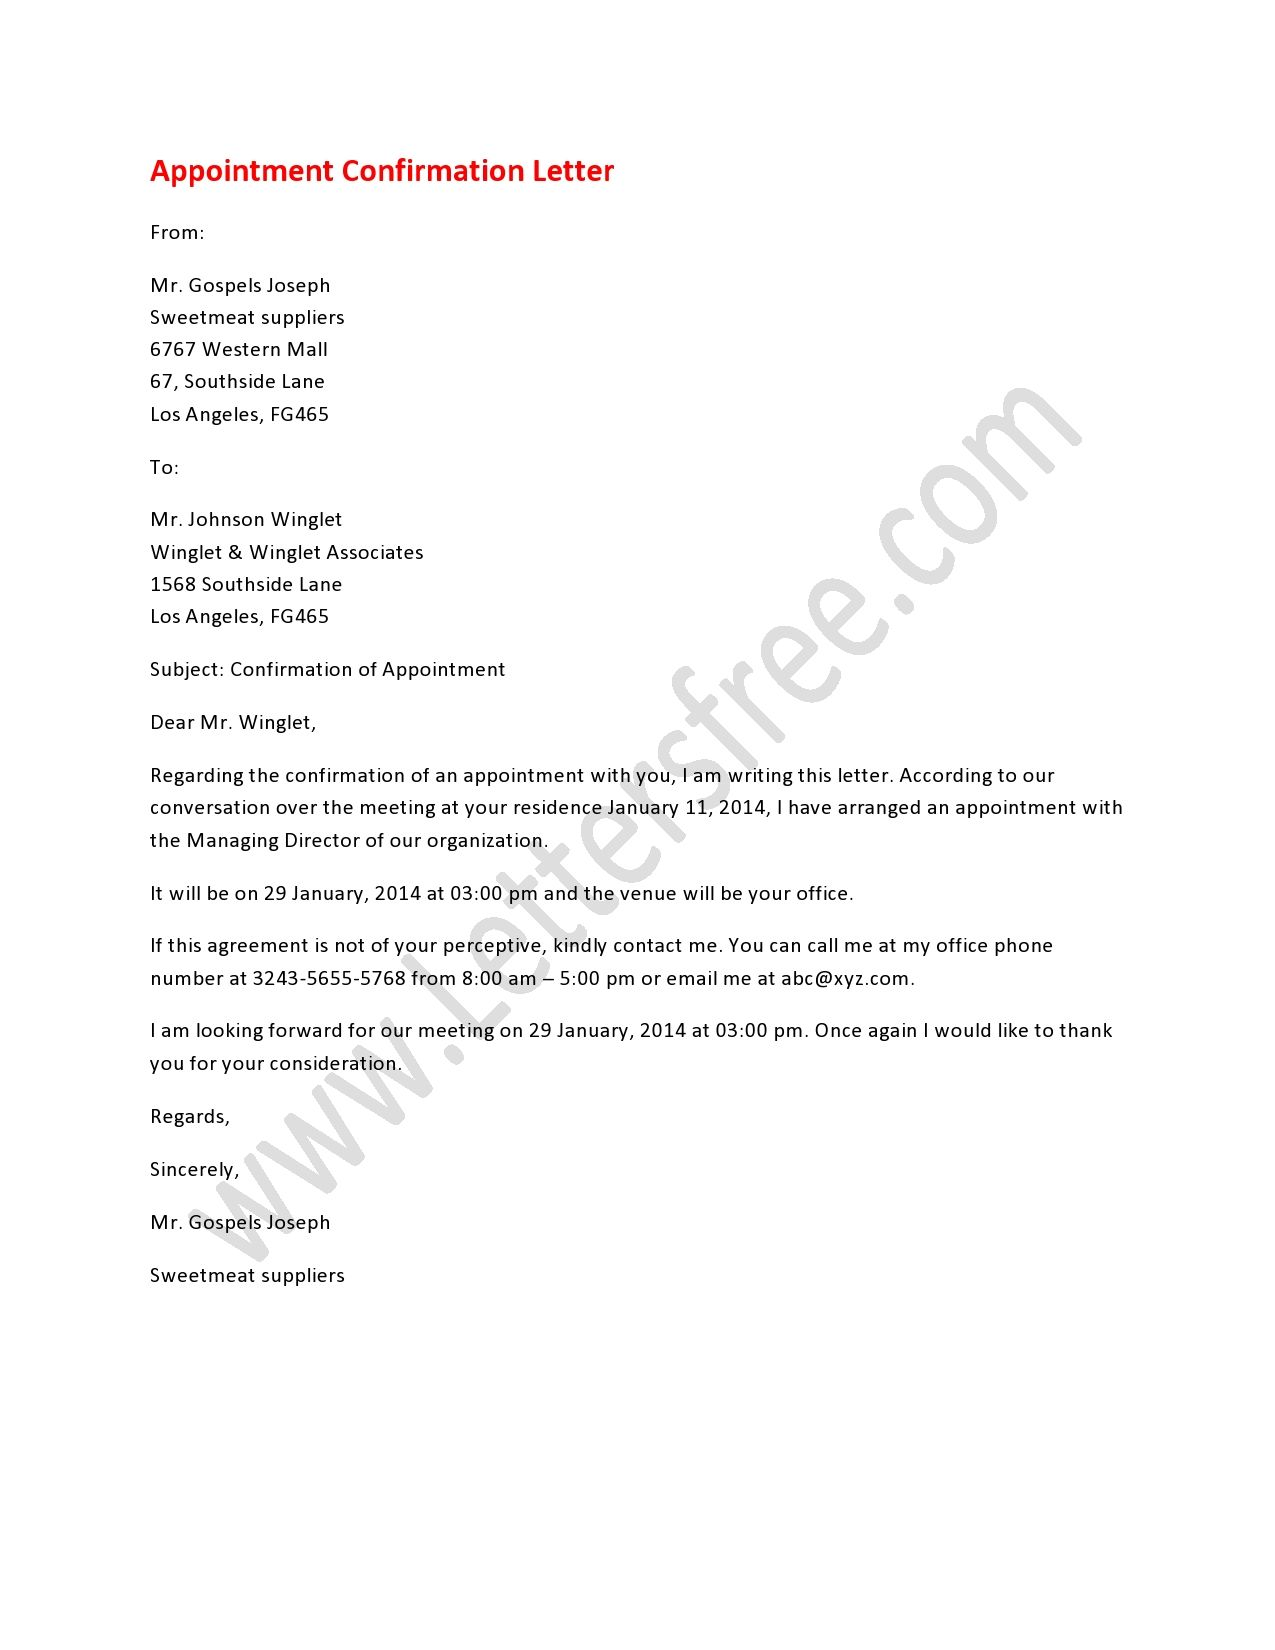 Appointment confirmation letter pinterest letter example appointment confirmation letter is a formal letter written for the confirmation of any business meeting or job interview thecheapjerseys